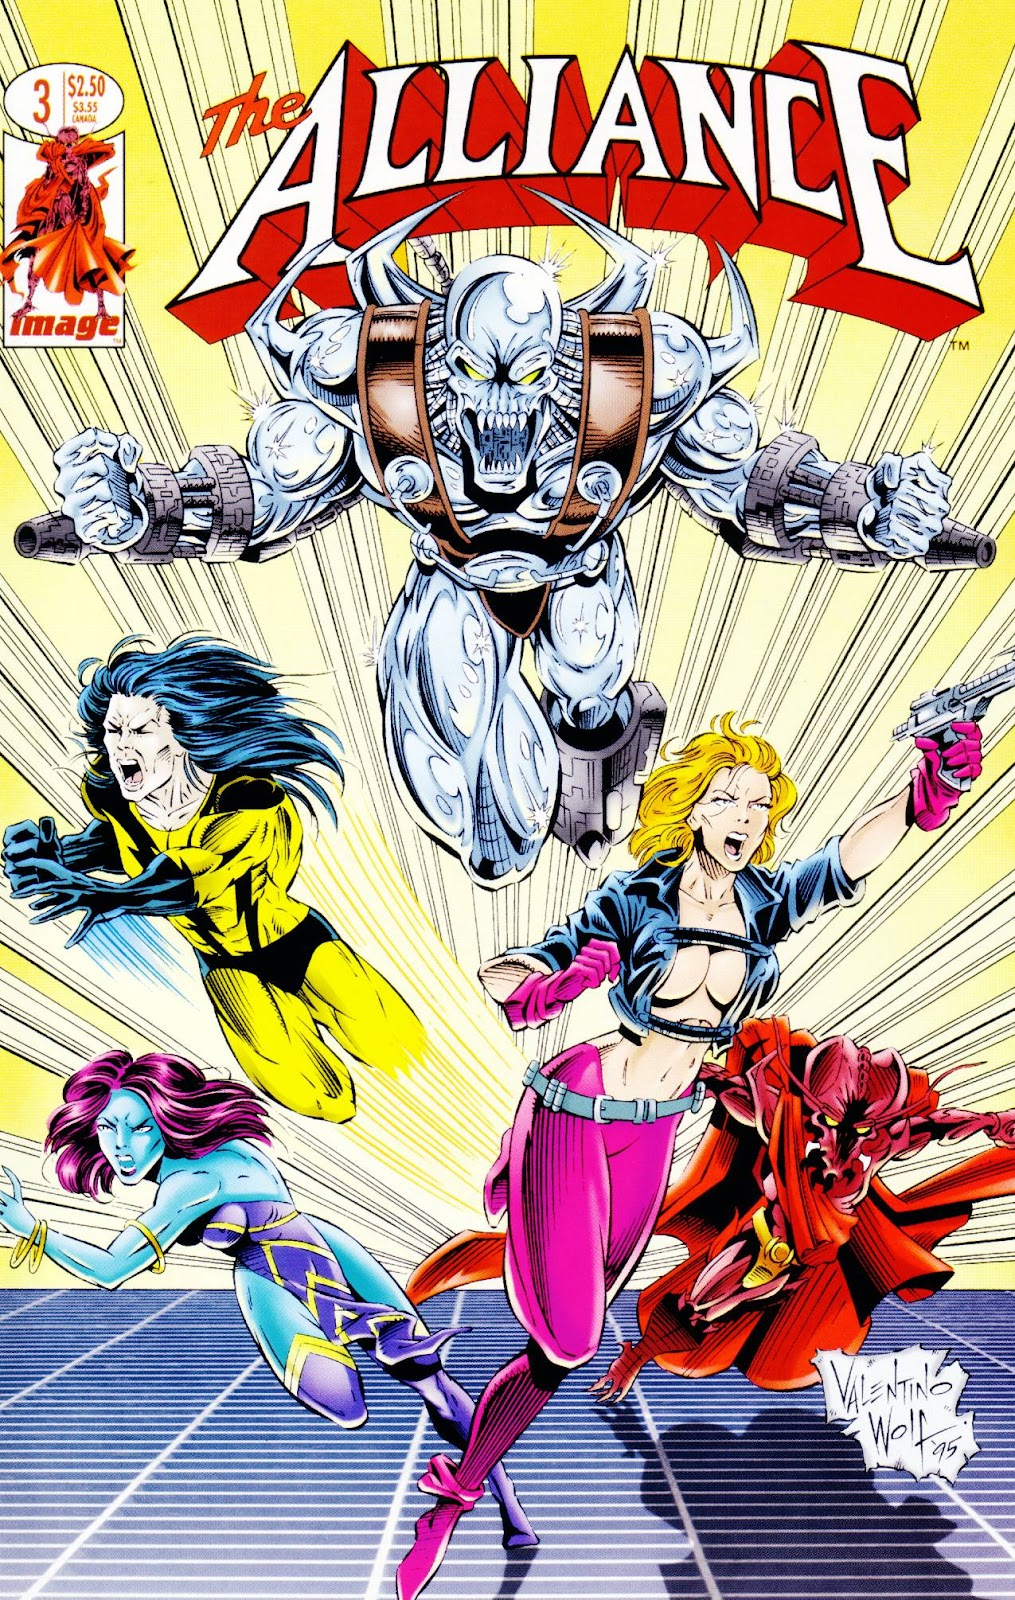 Read online The Alliance comic -  Issue #3 - 2